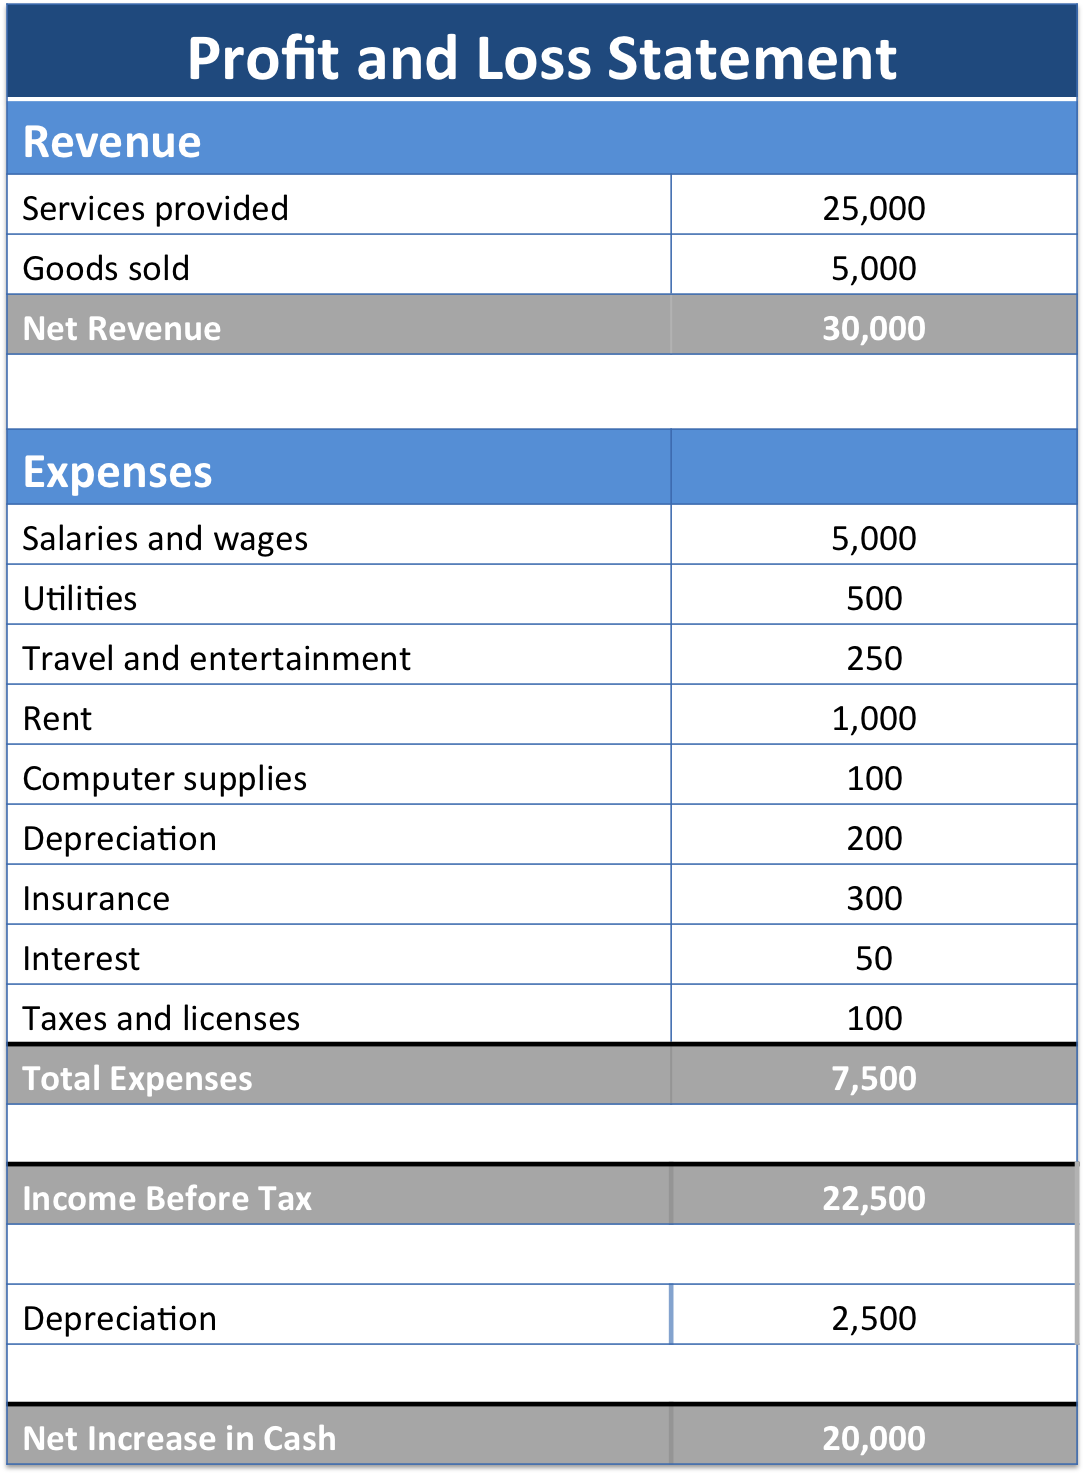 Profit and loss form 2015 35 profit and loss statement templates forms maxwellsz